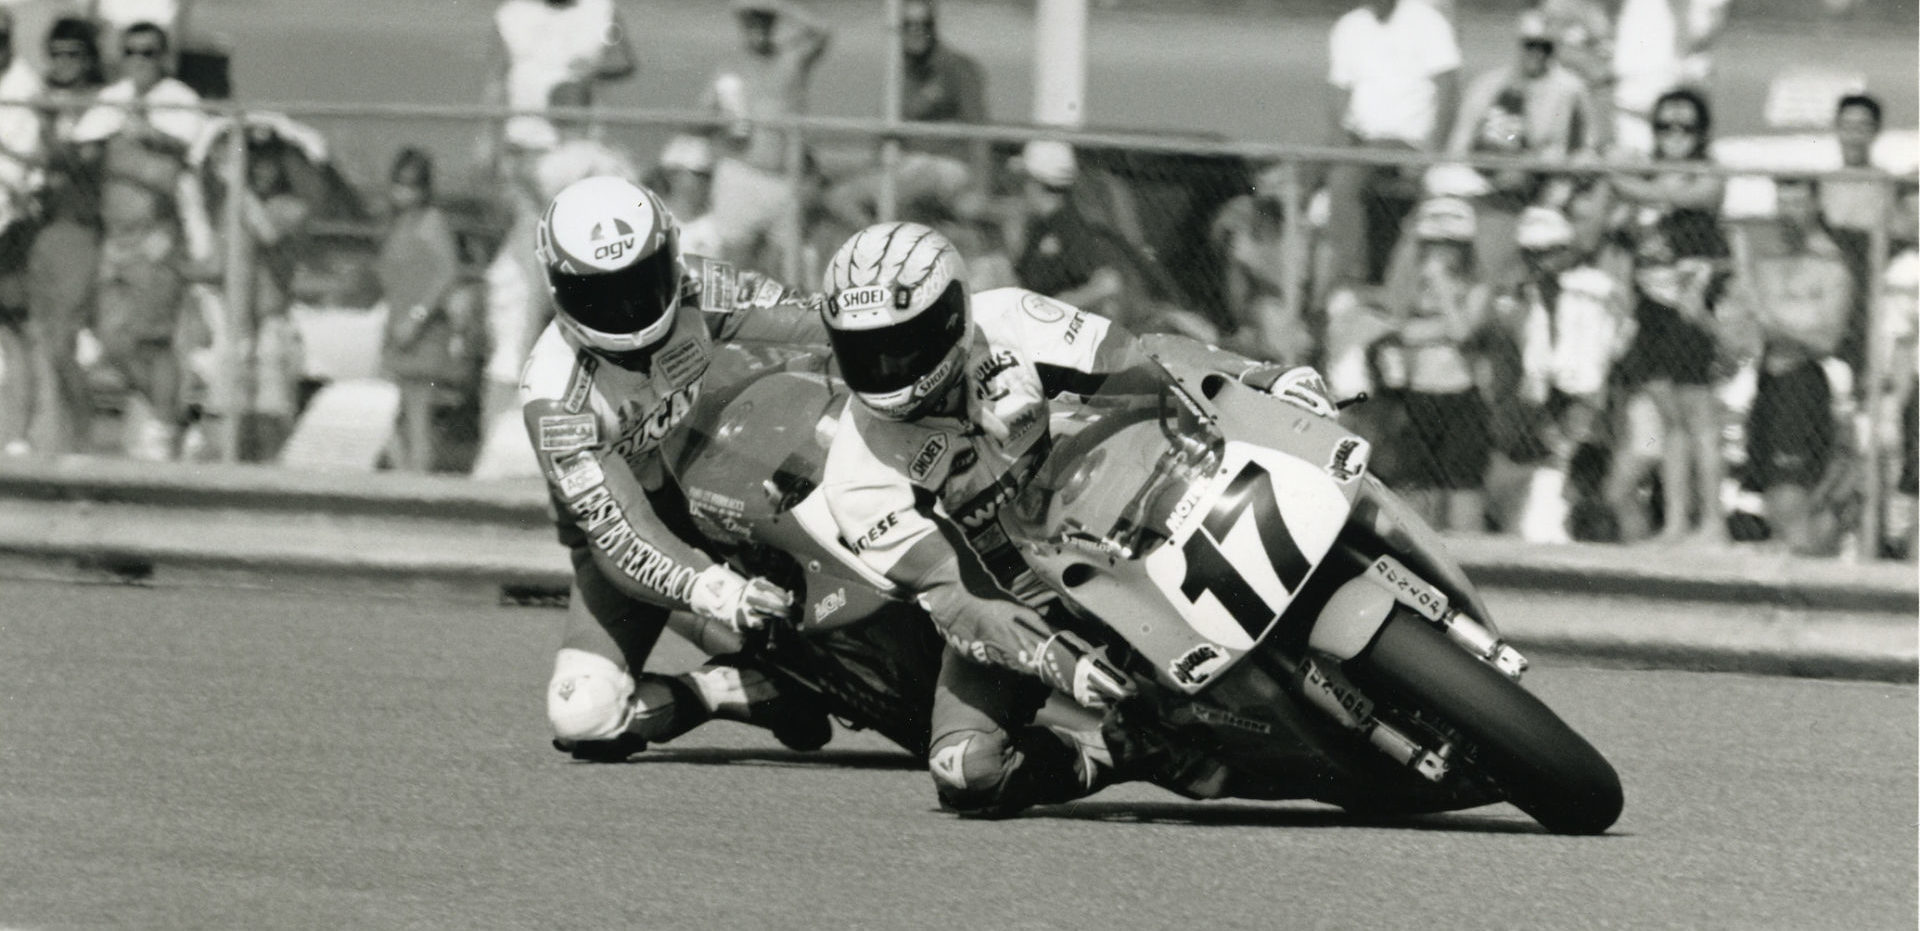 Scott Russell (17) leads on his way to his first Daytona 200 win in 1992. Russell will be a featured instructor at the Team Hammer Advanced Riding School on October 18, 2019. Photo by John Flory.